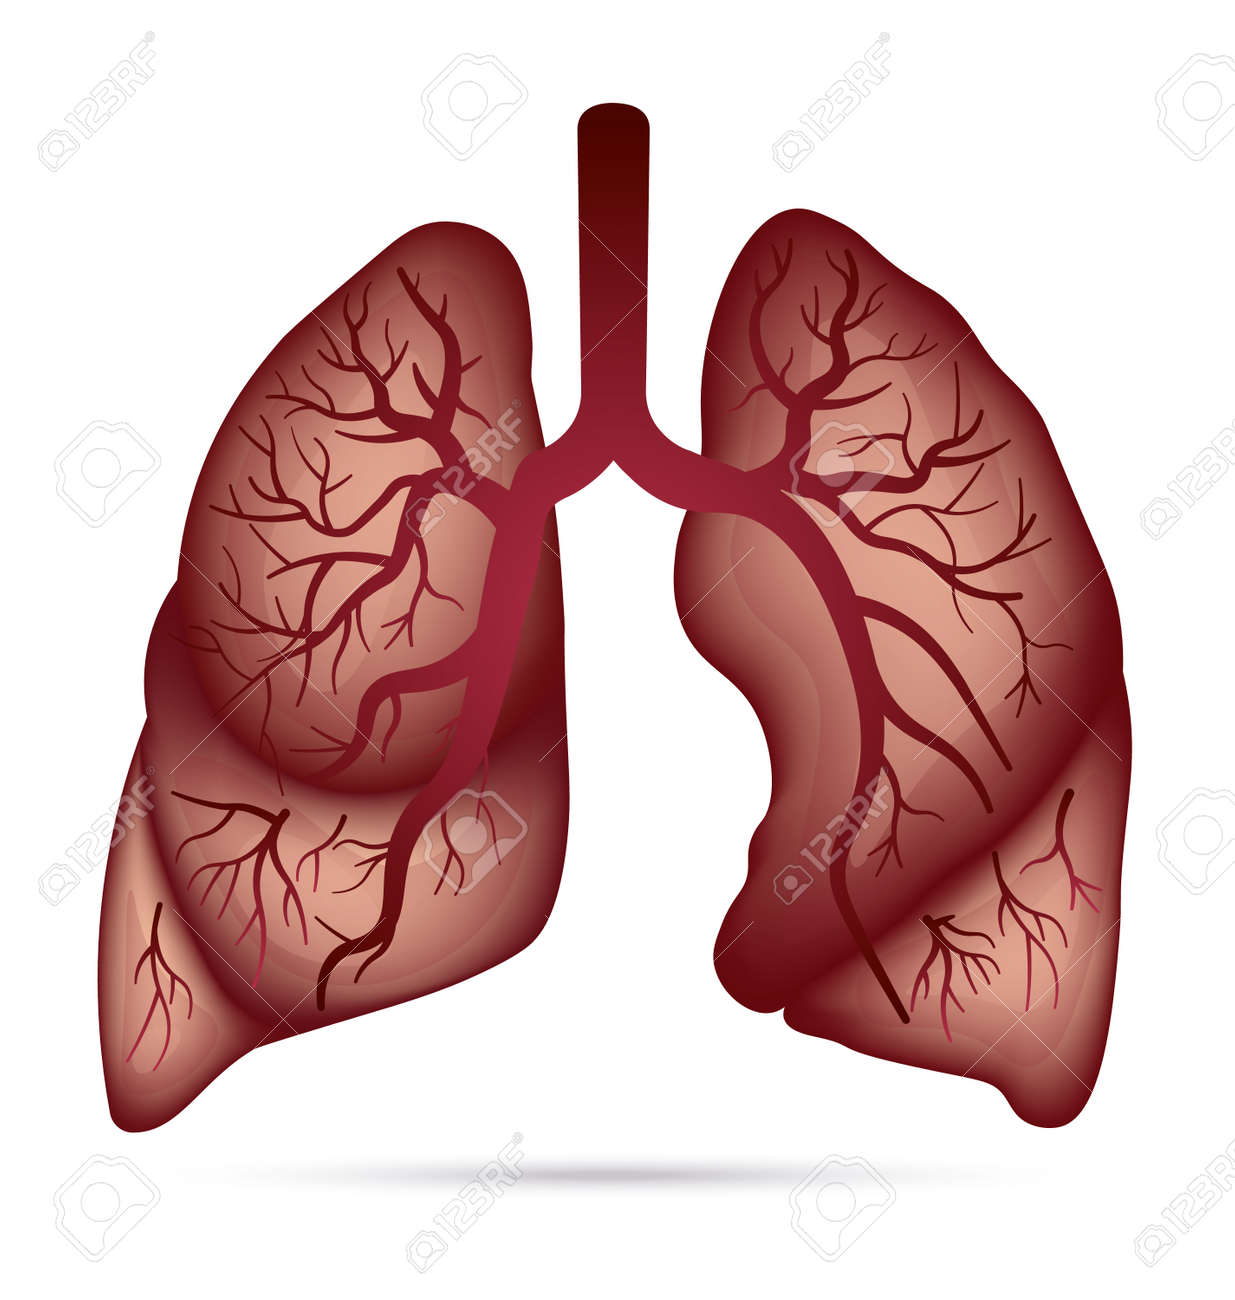 lungs anatomy for asthma, tuberculosis, pneumonia. Lung.. on costal surface of lung, lung nodules, lung drawing, mediastinal surface of lung, clara cell, lung lobes, lung infection, conducting zone, lung model, respiratory bronchiole, bronchopulmonary segment, lung structure, lung hilum, base of lung, borders of lung, apex of lung, alveolar duct, horizontal fissure of right lung, lingula of left lung, lung cartoon, lung cross section, lung function, lung health, lung segments, lung apex, lung animation, lung disease, root of the lung, oblique fissure, lung force, cardiac notch, lung bleb, terminal bronchiole, hilum of lung, lung tree birds, right lung, lung mri, lung volumes, pulmonary alveolus,